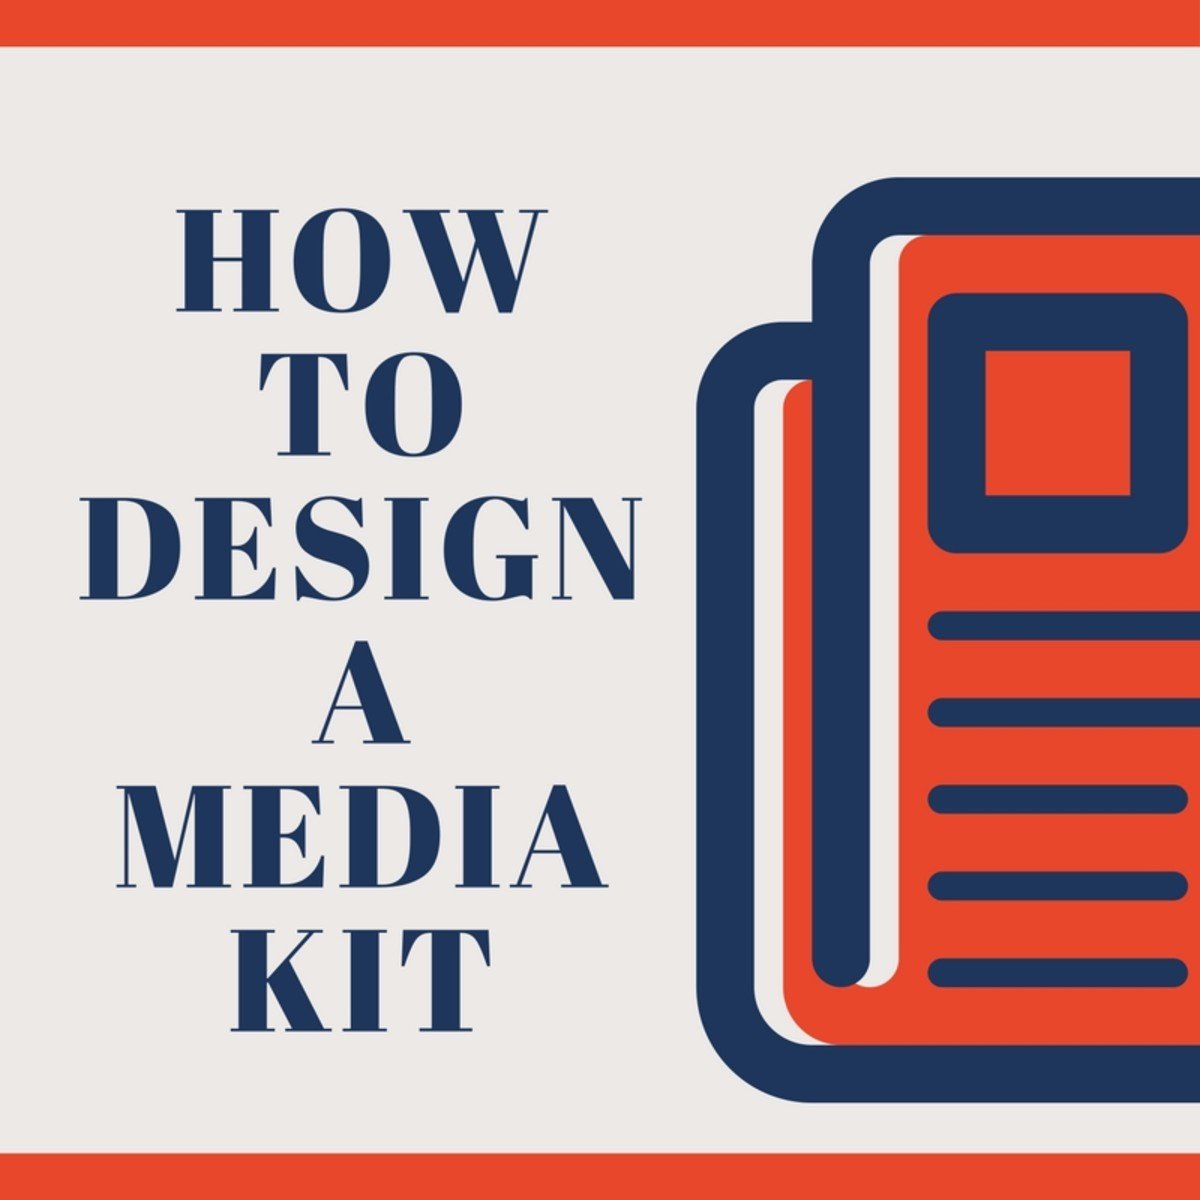 How to Design a Media Kit